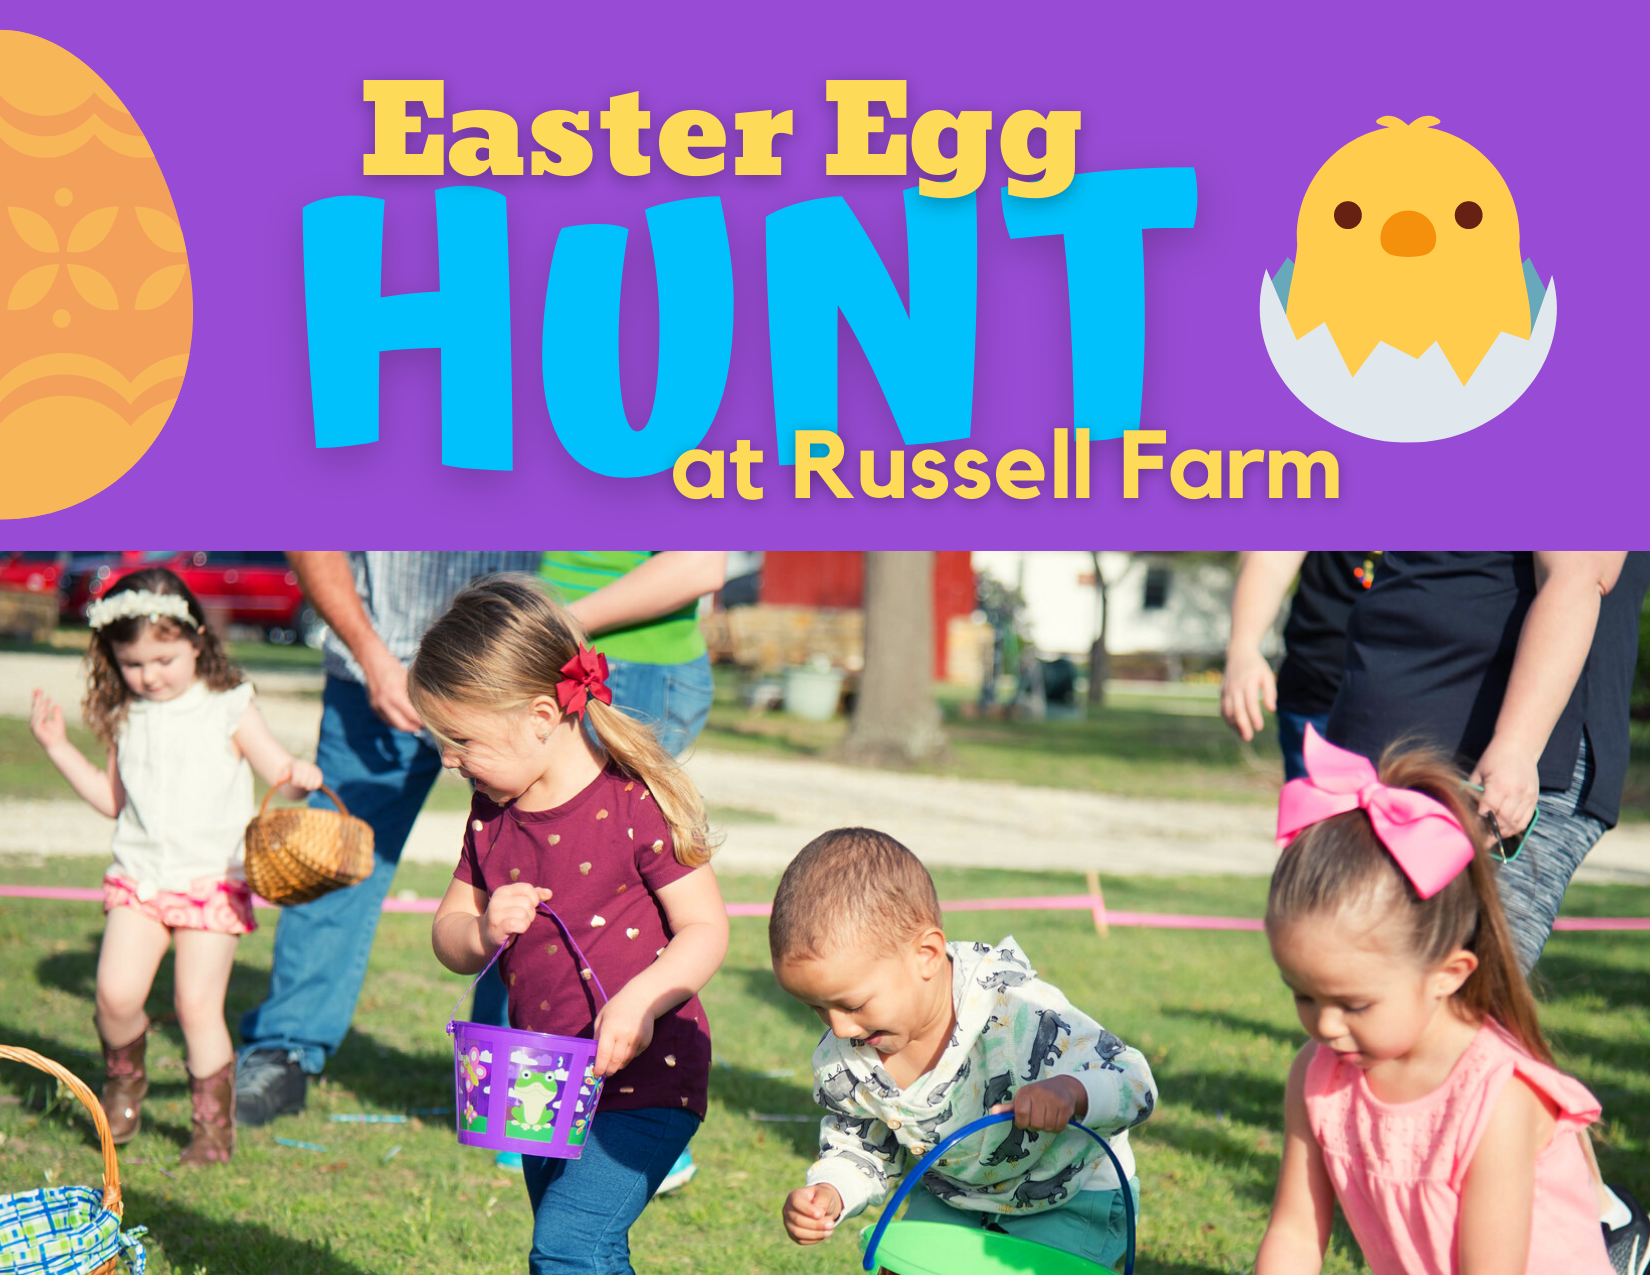 Russell Farm Easter